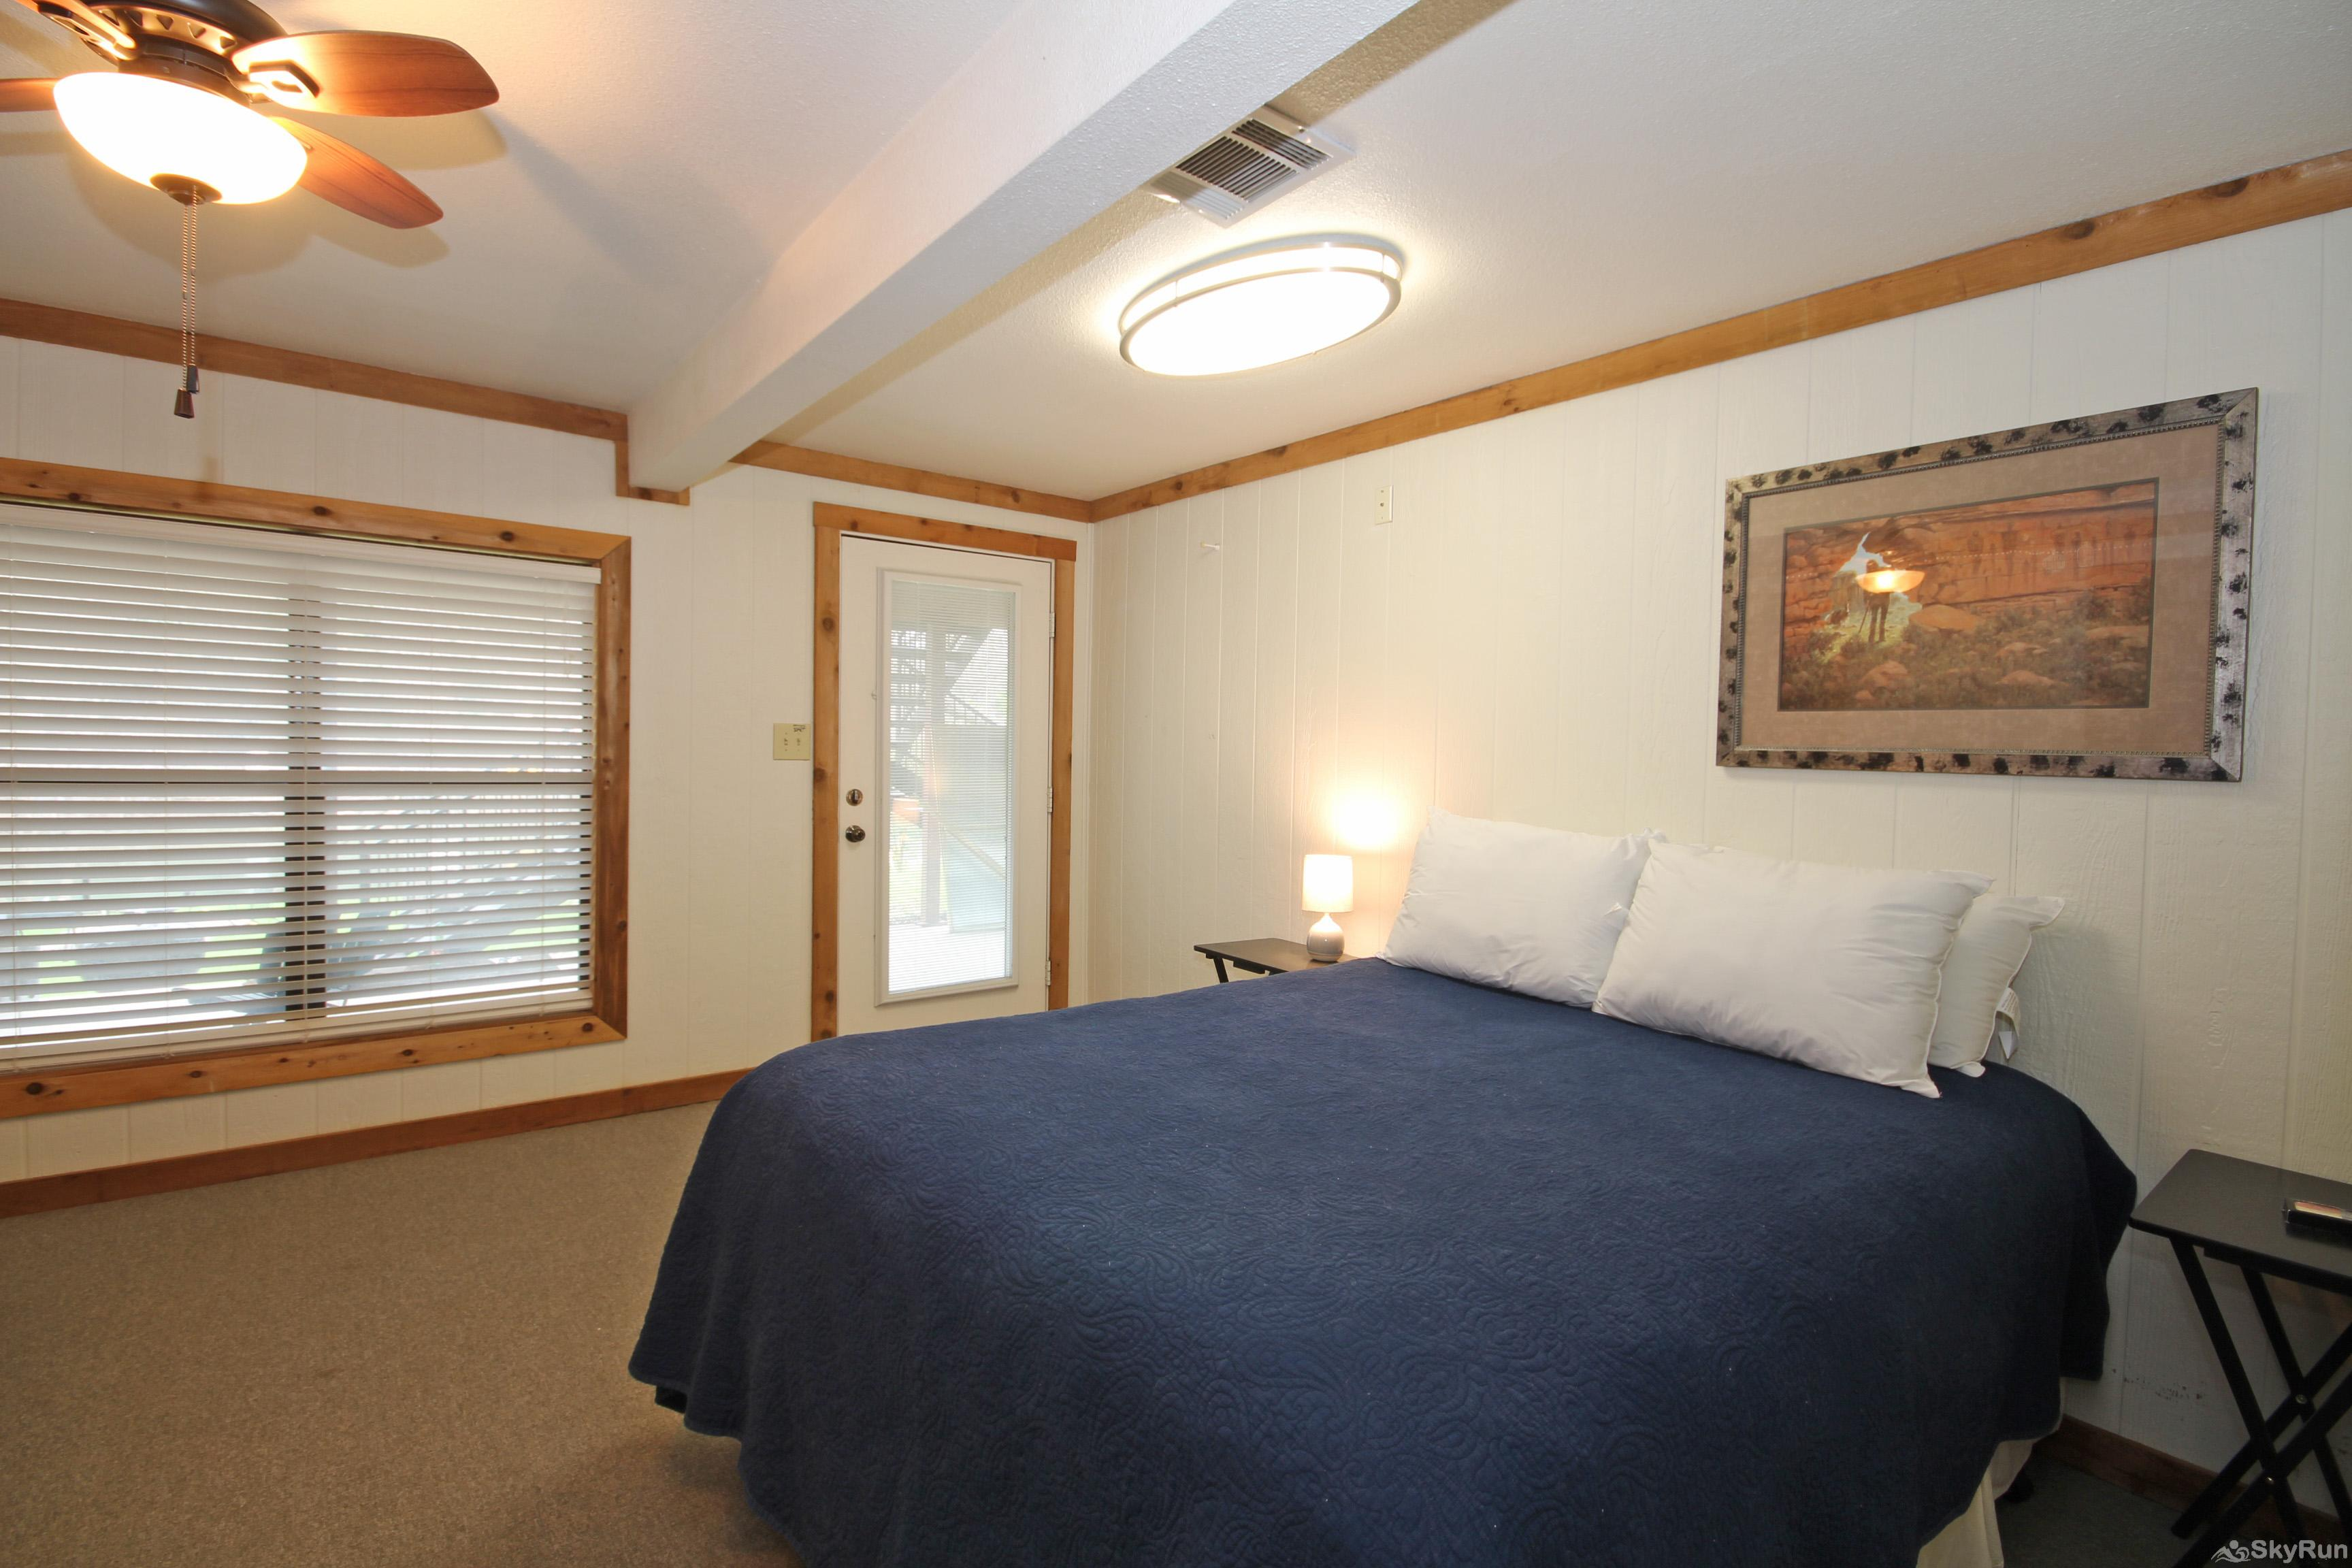 HONDO'S RIVER HAUS Second bedroom with queen bed